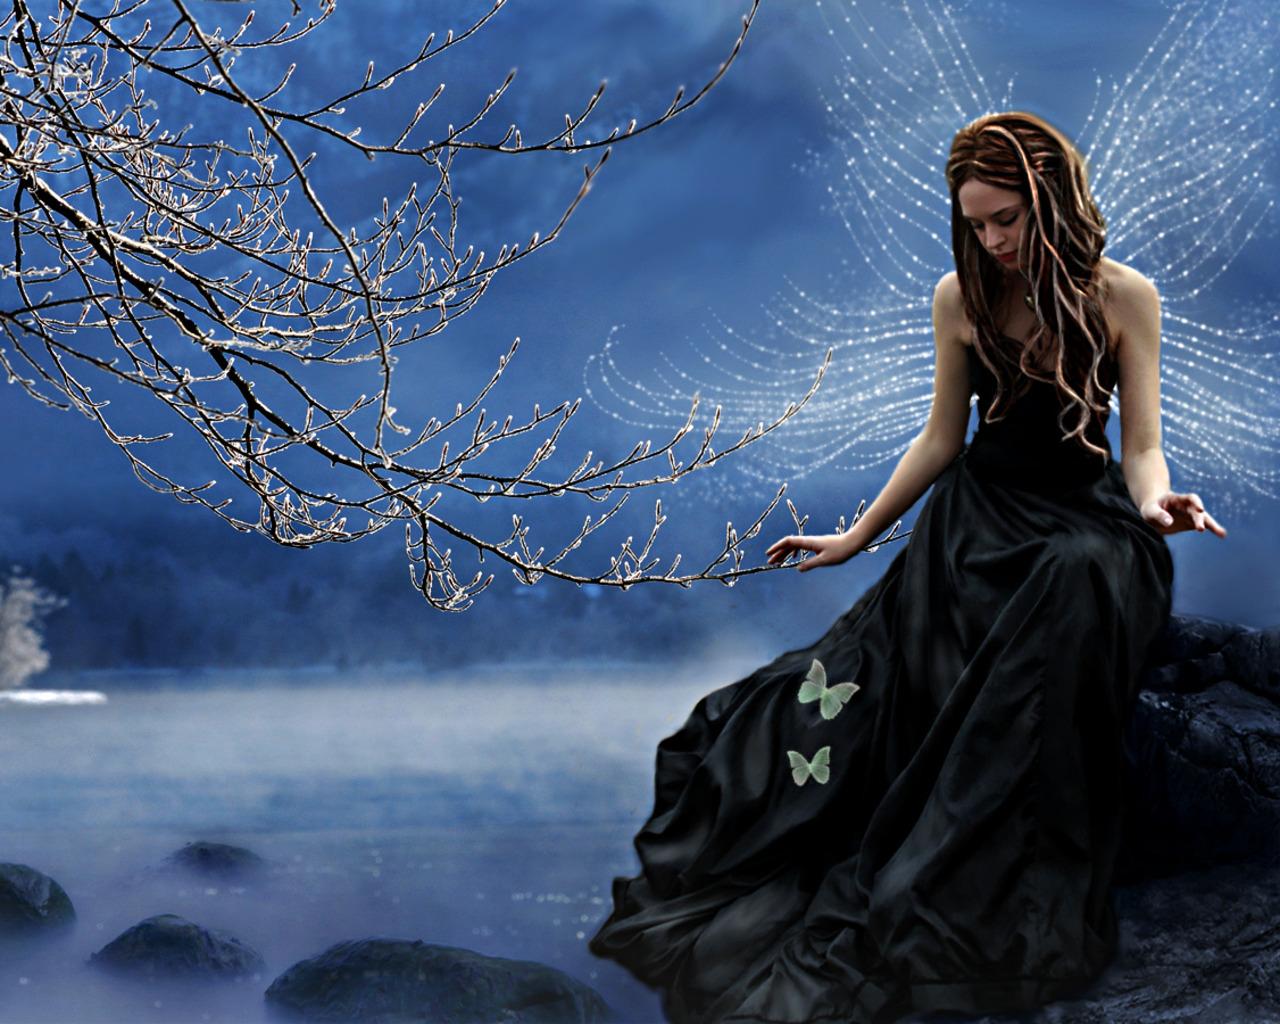 Fantasy Fairy Wallpaper | Fantasy | Pinterest | Amigos, Wallpapers